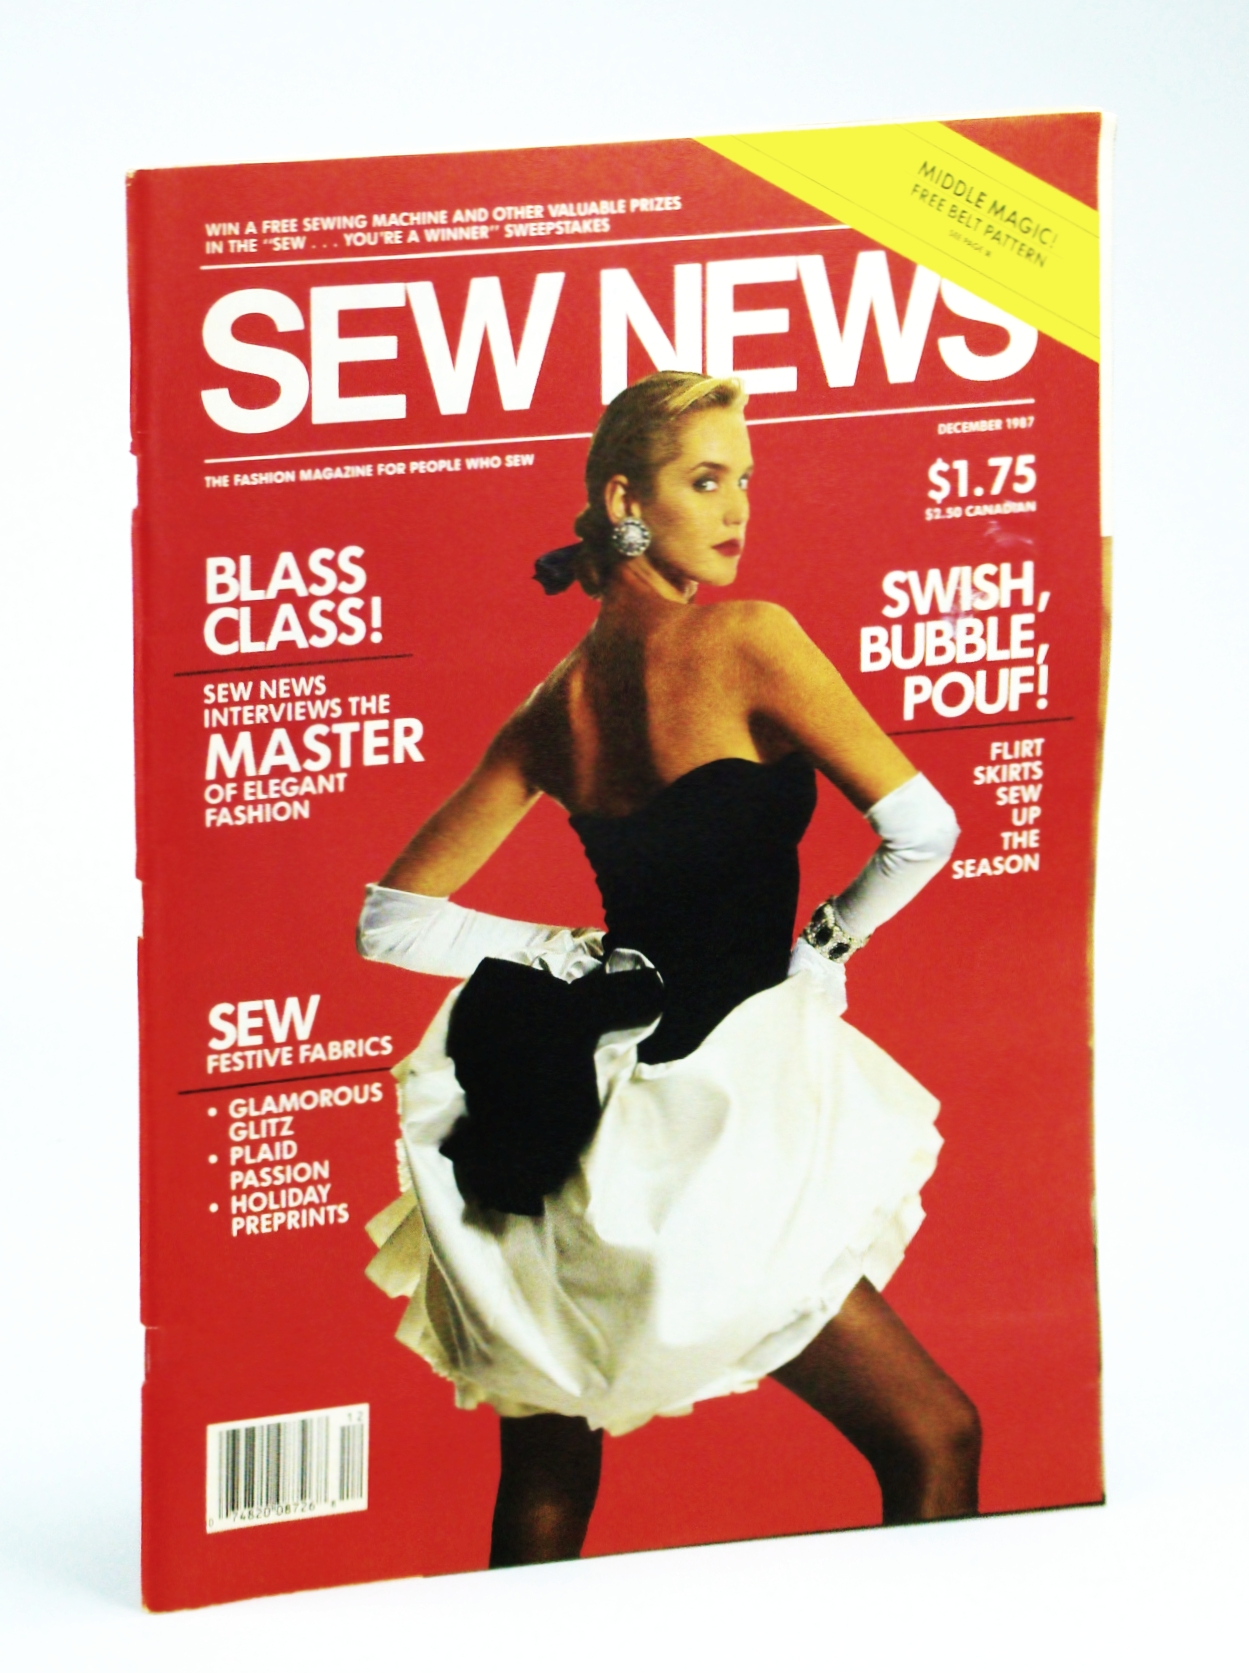 Image for Sew News - The Fashion Magazine For People Who Sew, Number 63, December [Dec.], 1987 - Carolina Herrera Cover / Bill Blass Interview